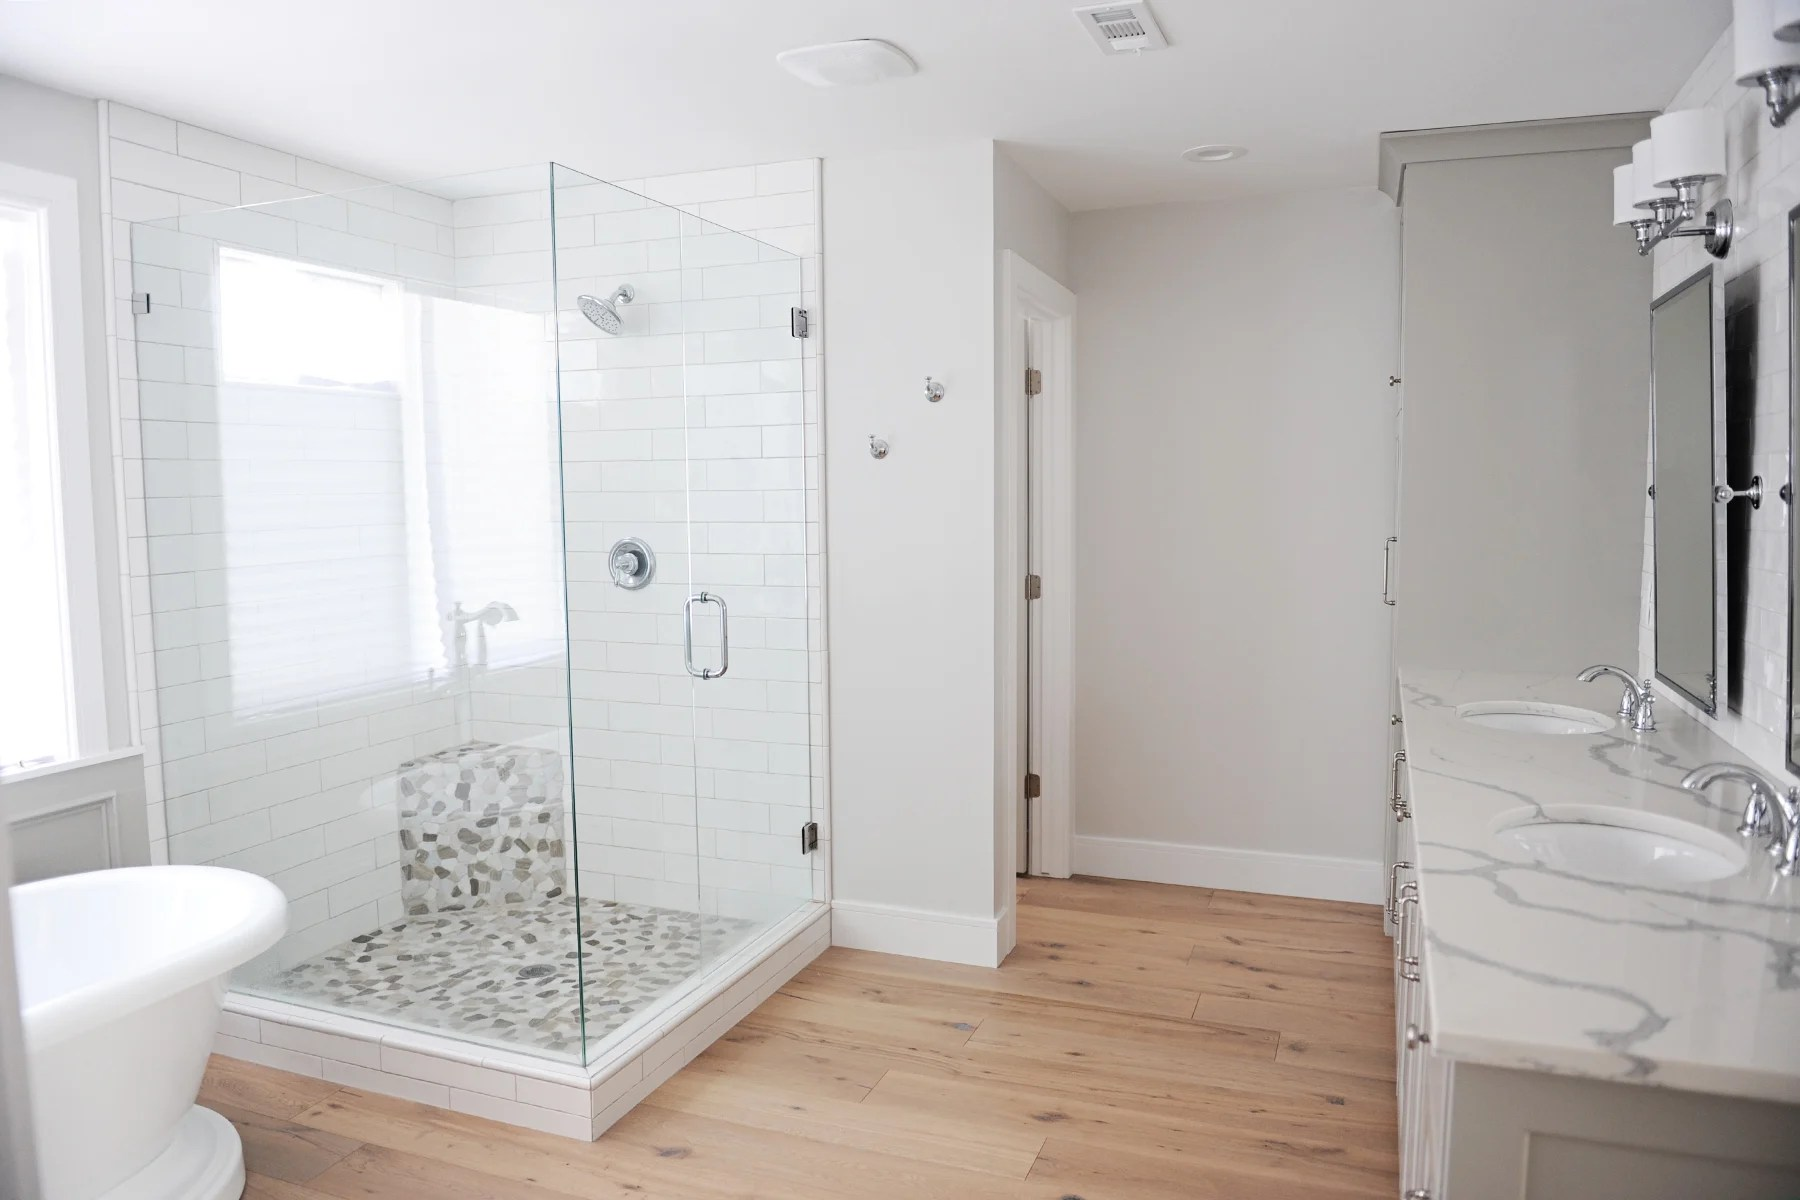 Master Bathroom Remodel Renovation Idea Before And After